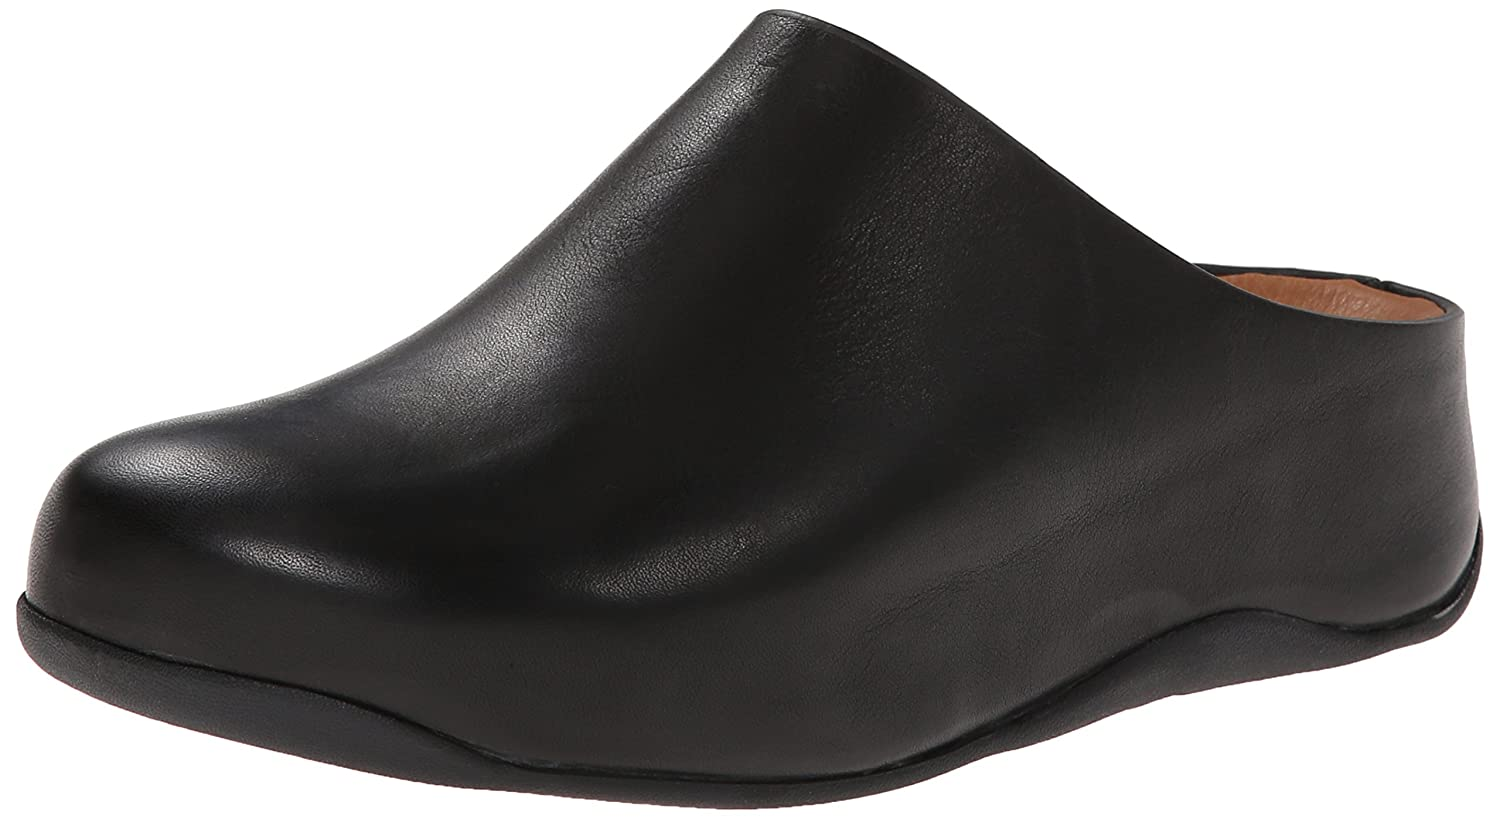 05ba99a6d9d2 Fitflop womens shuv leather clog mules clogs jpg 1500x819 Fitflop shuv  patent clogs